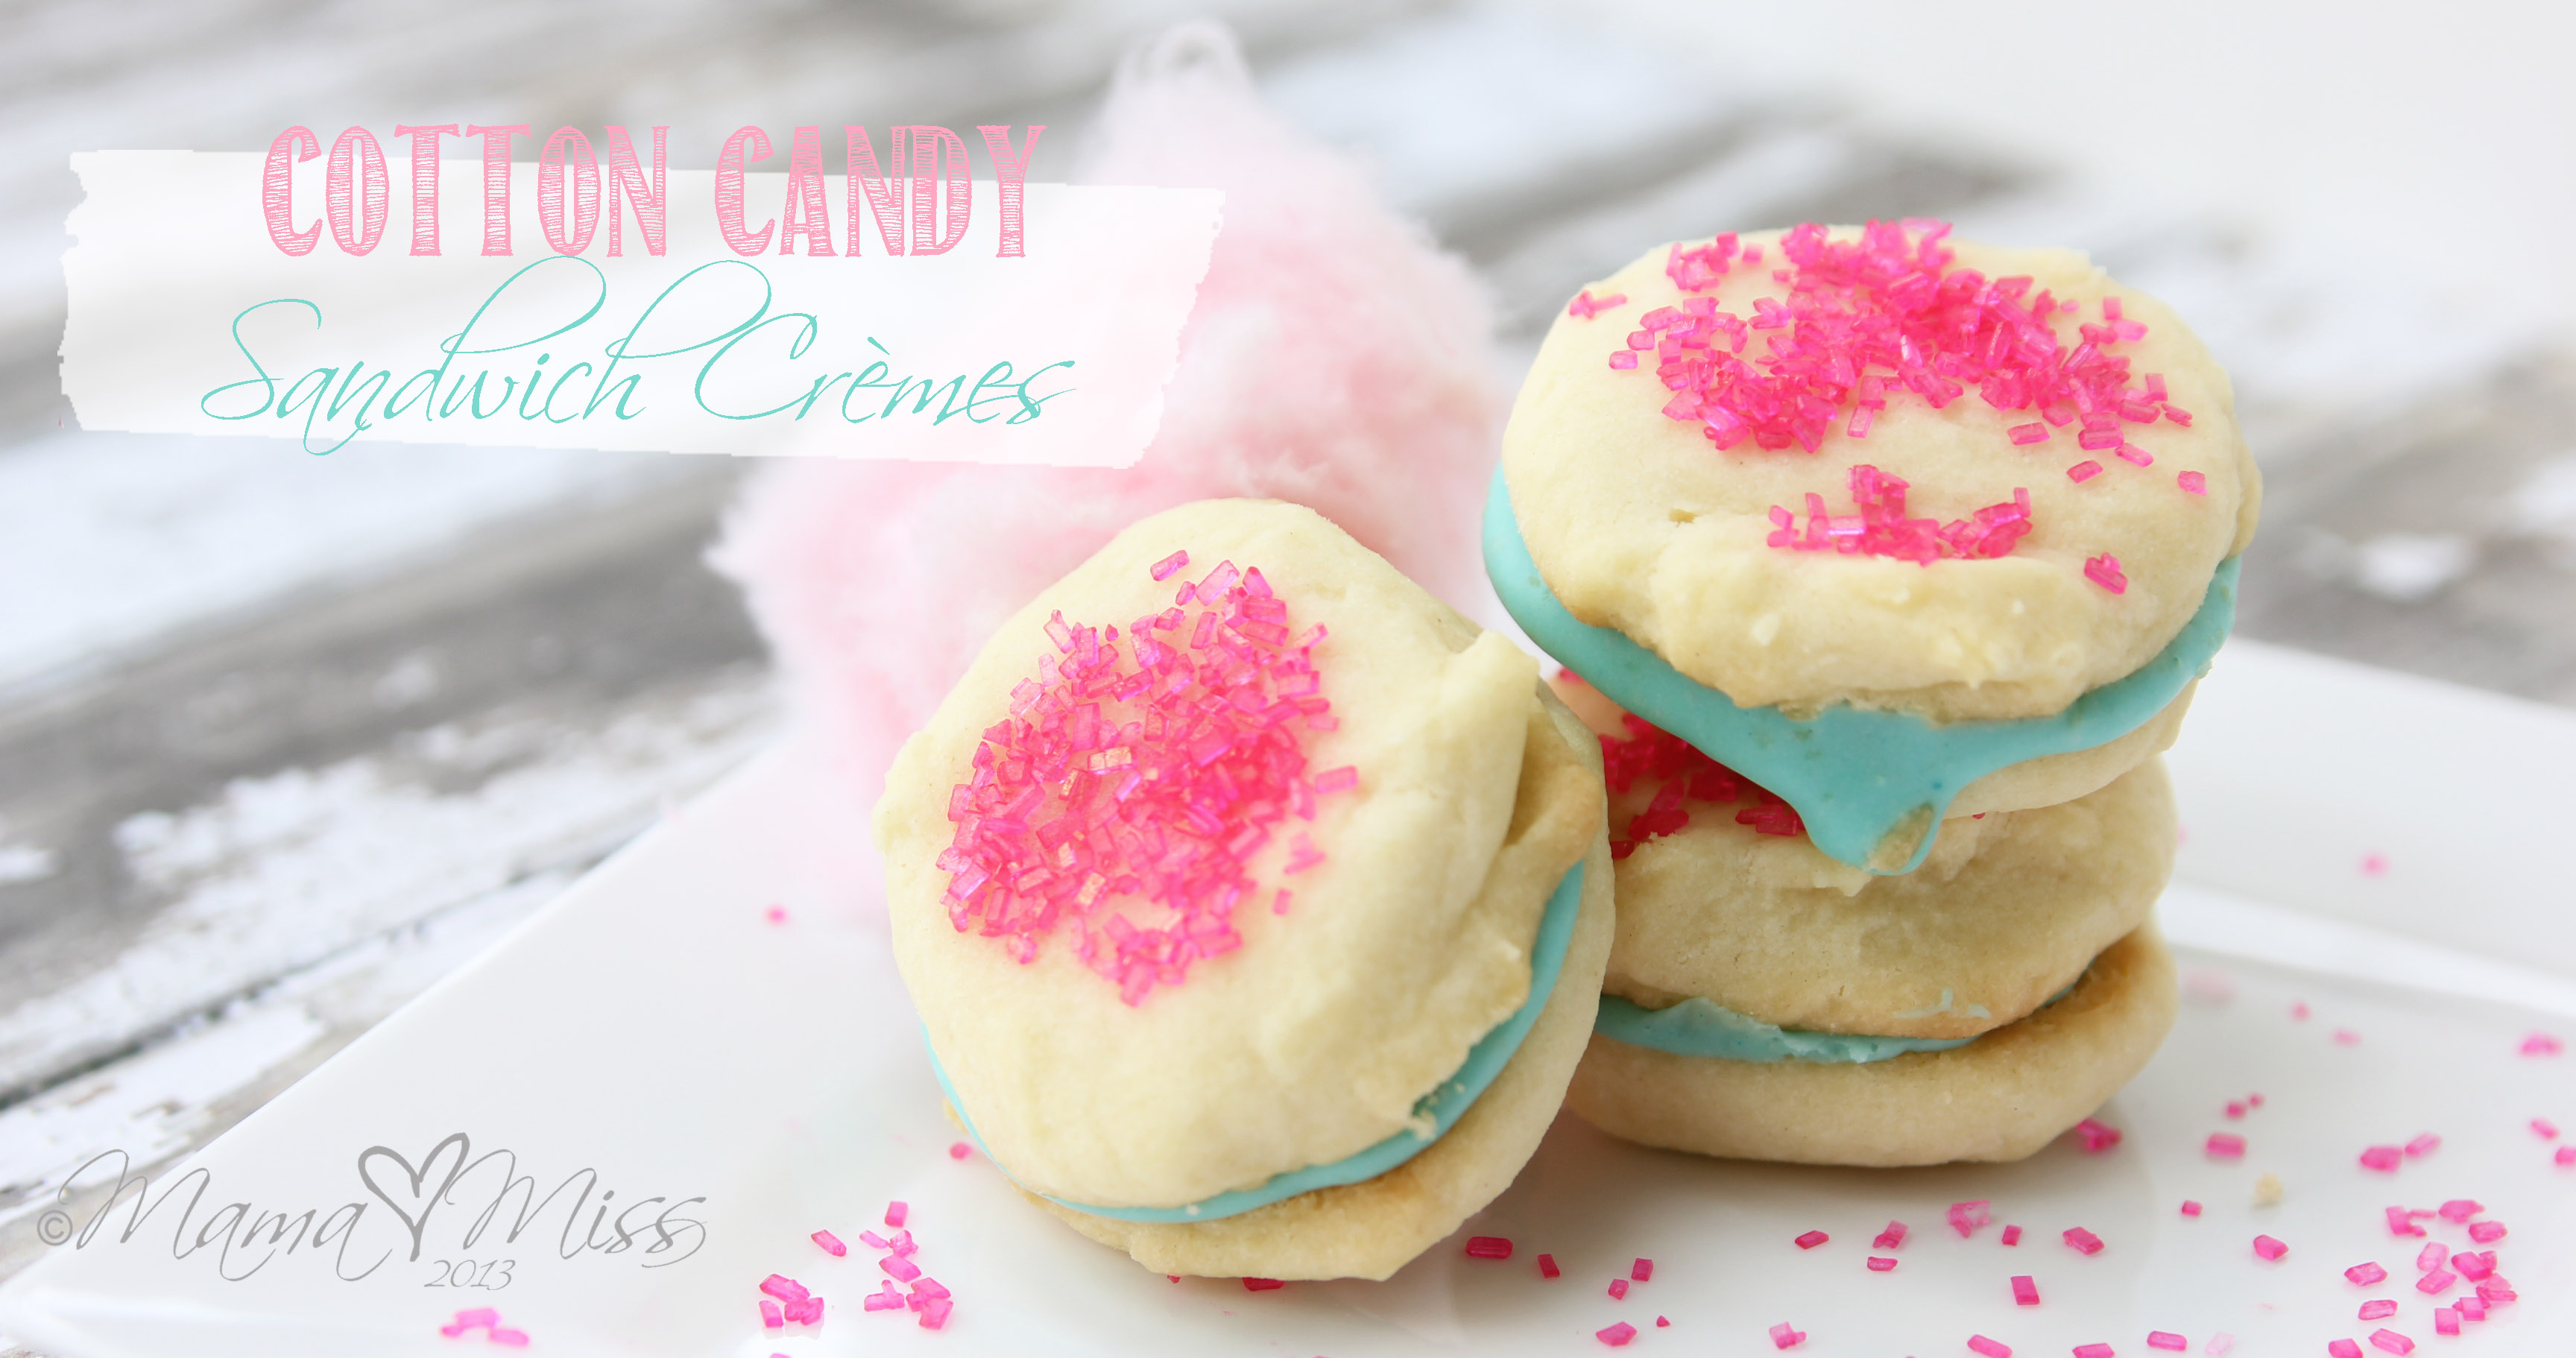 Cotton Candy Sandwich Crèmes https://www.mamamiss.com ©2013